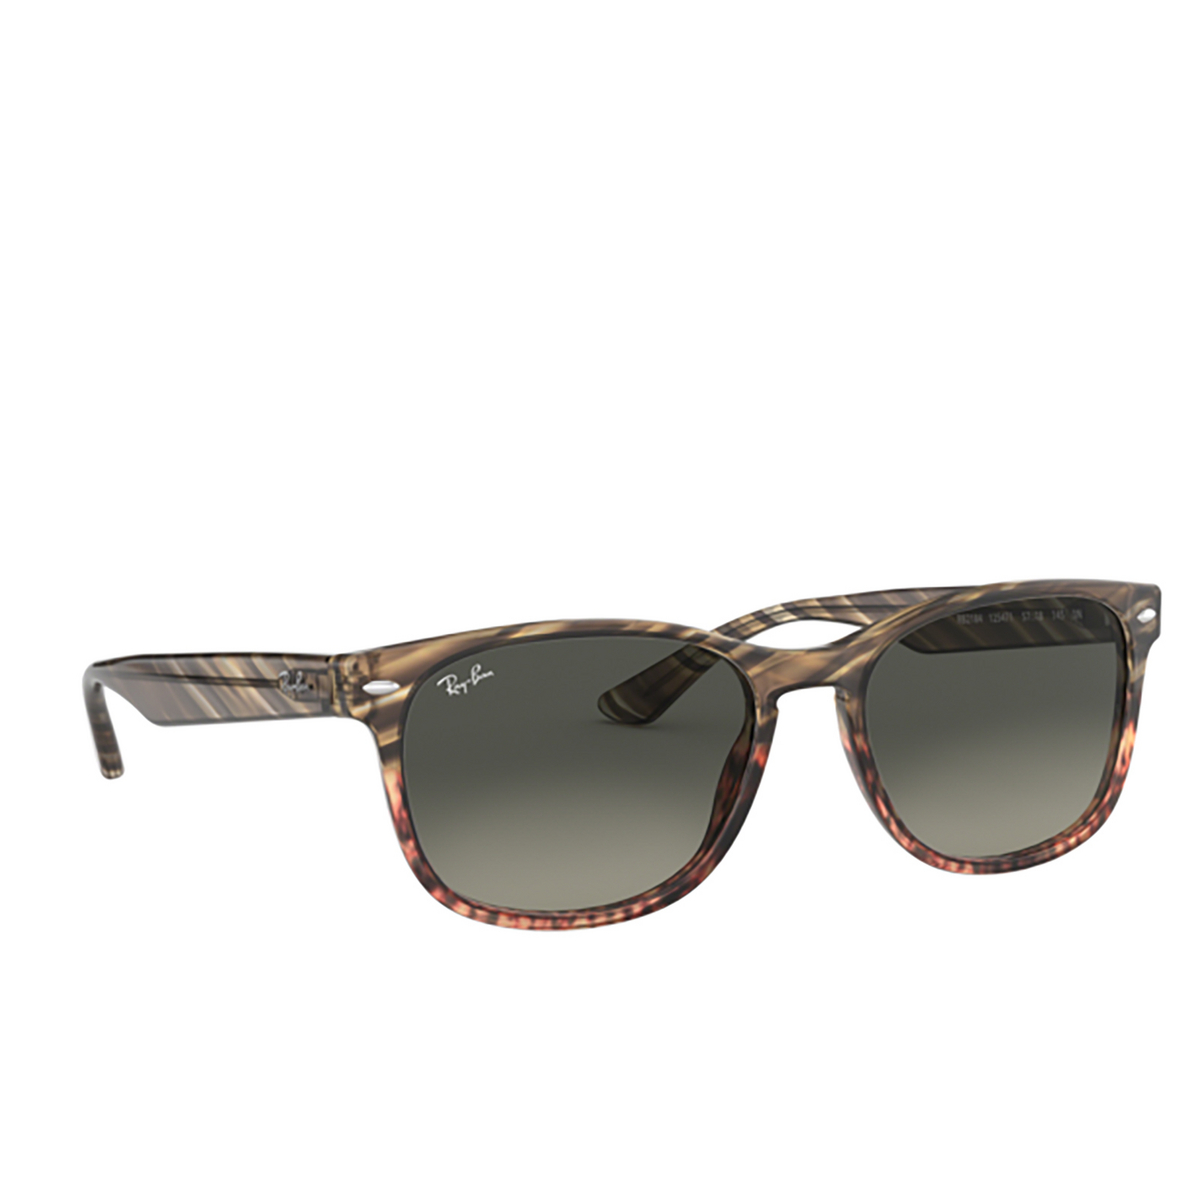 Ray-Ban® Square Sunglasses: RB2184 color Grey Gradient Brown Striped 125471 - 2/3.